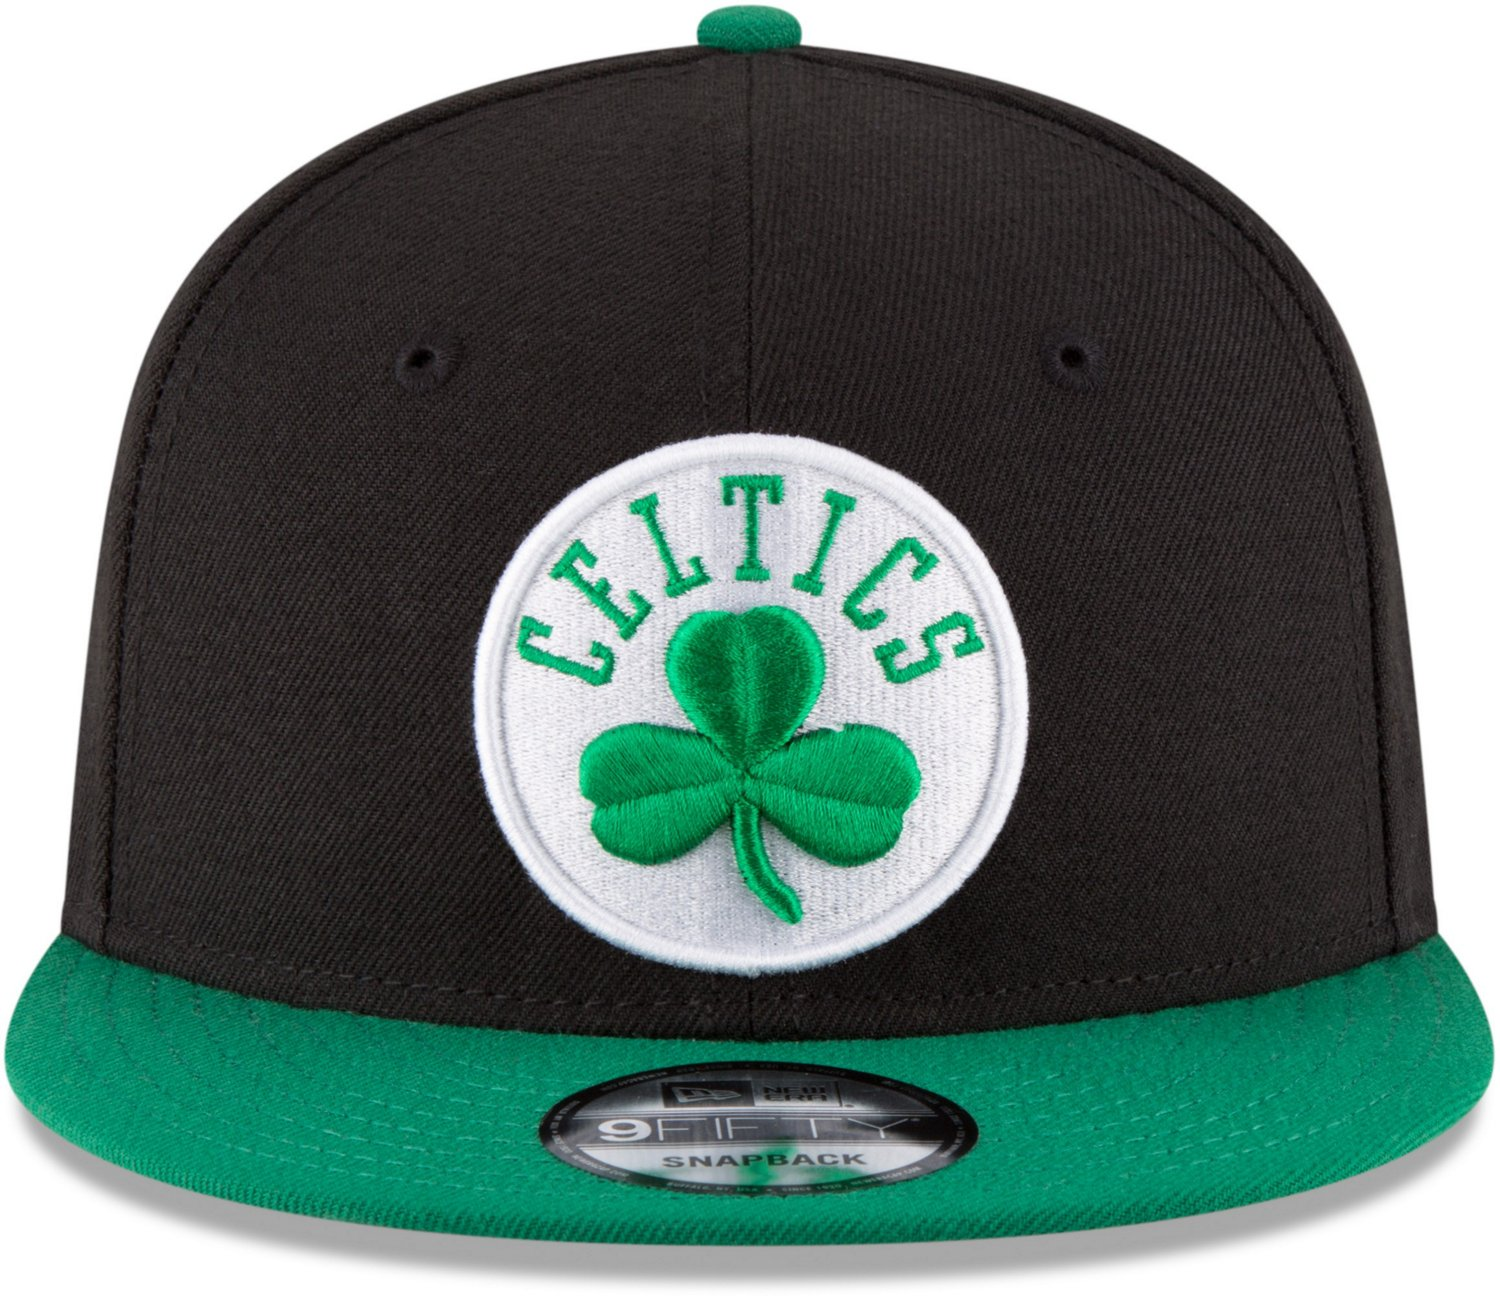 finest selection 6fa77 3b72e New Era Men s Boston Celtics 2Tone 9Fifty Snapback Hat   Academy